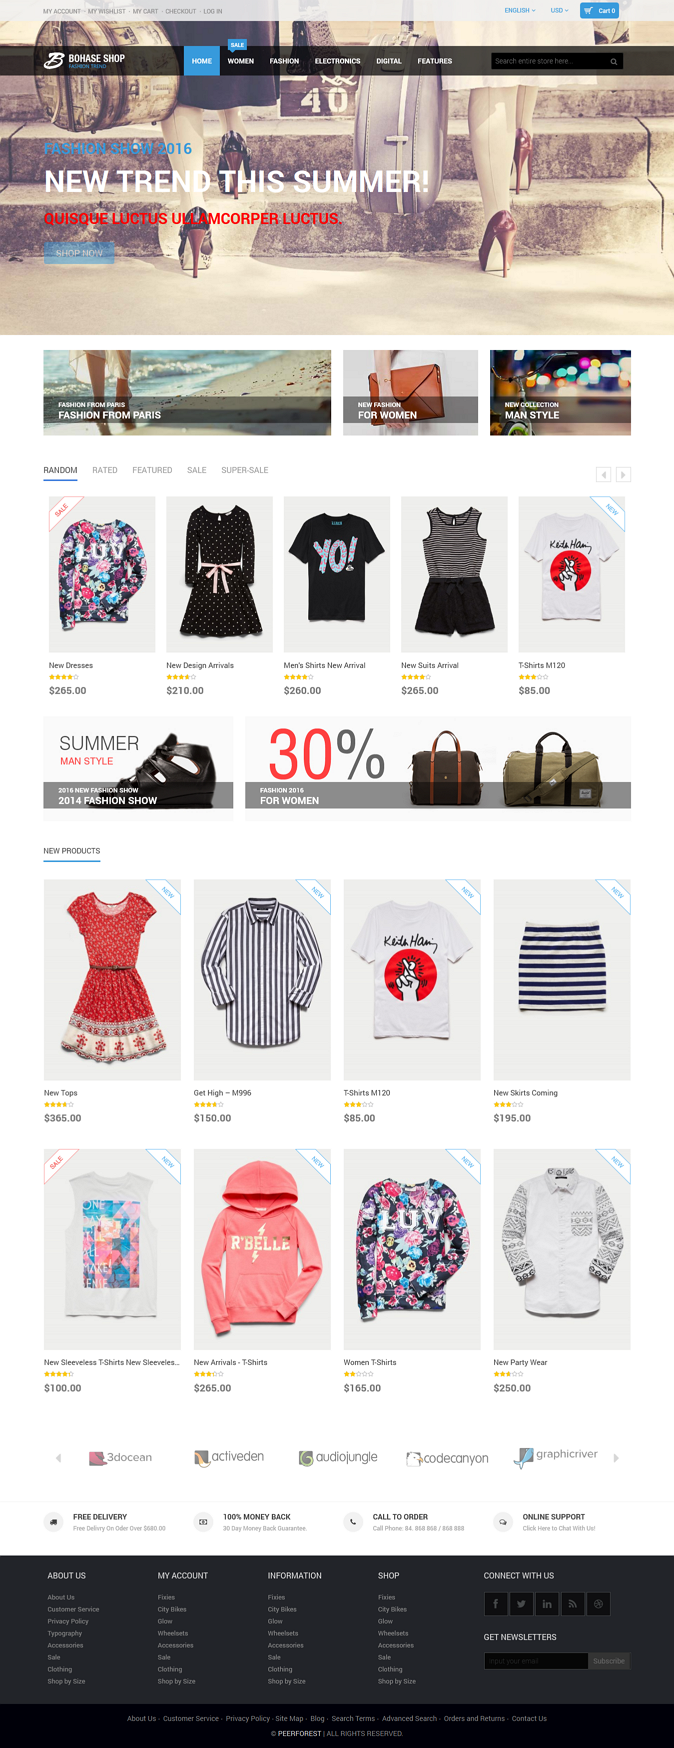 Bohase Shop is a premium Magento theme with advanced admin module. It's extremely customiz ...